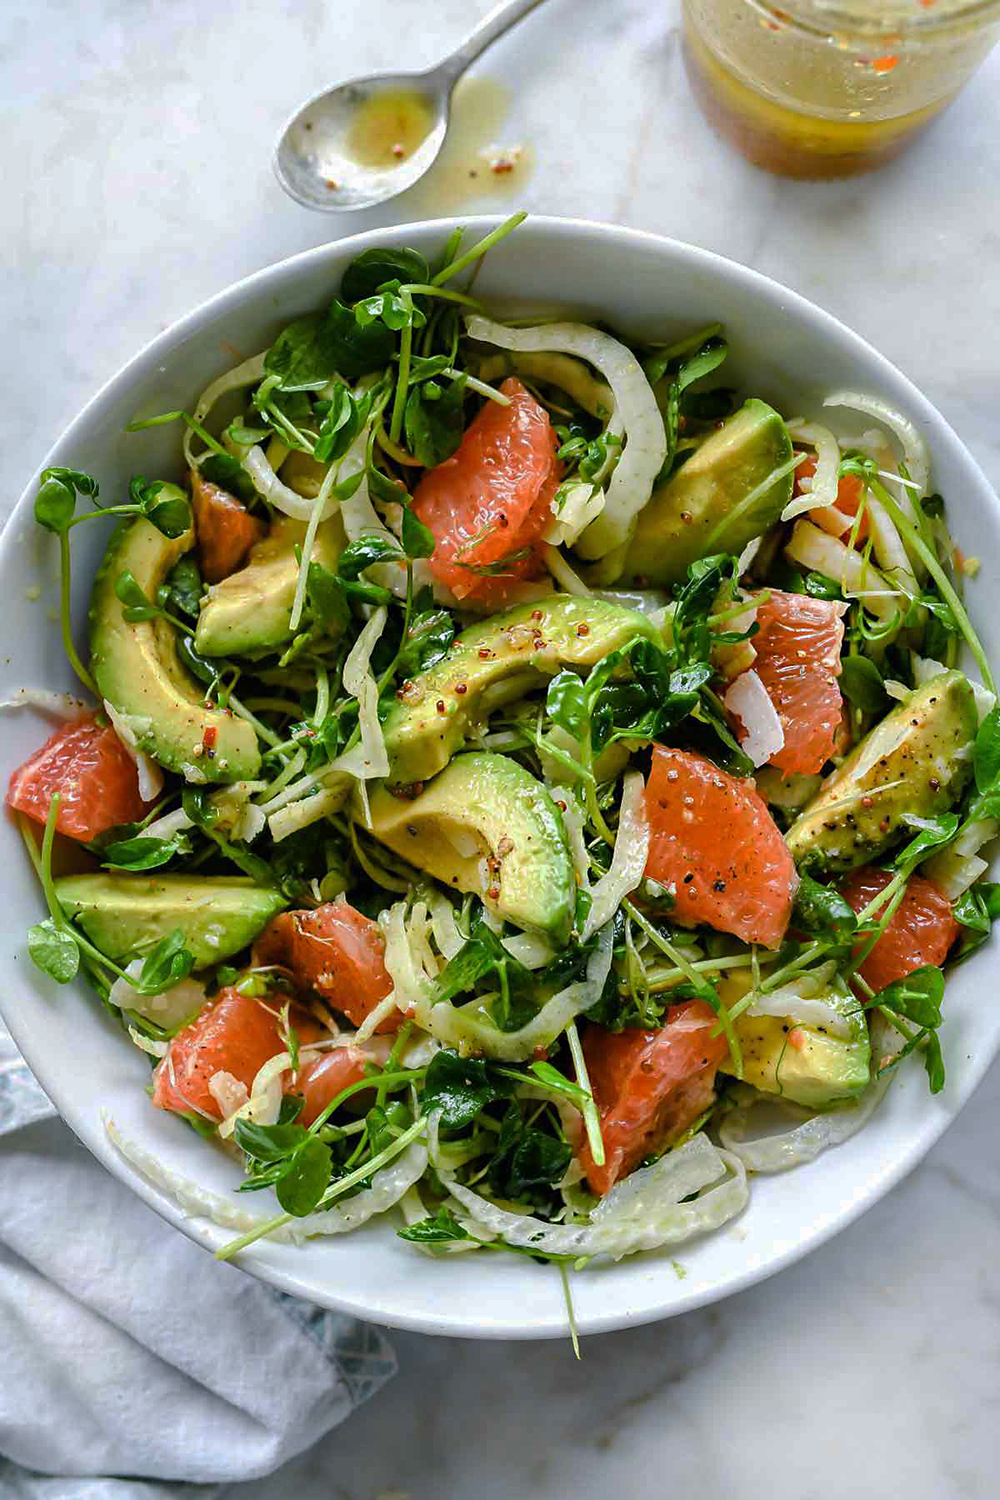 https://www.foodiecrush.com/grapefruit-avocado-fennel-salad/